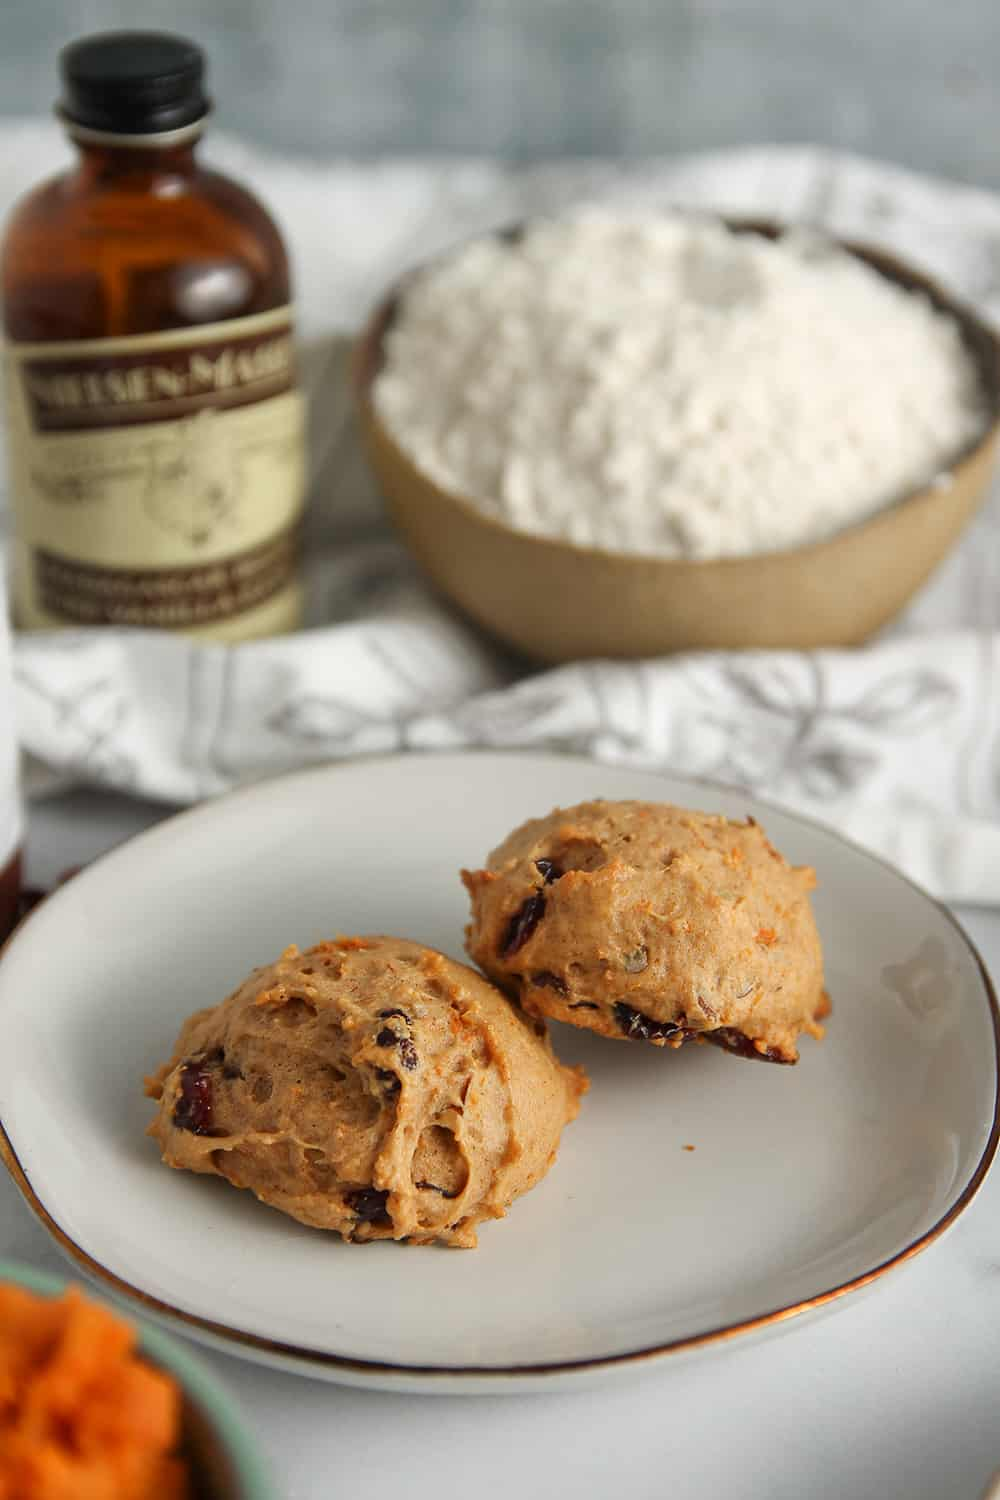 Sweet Potato Cookies are soft, cakey, and full of sweet potato and dried cranberries.